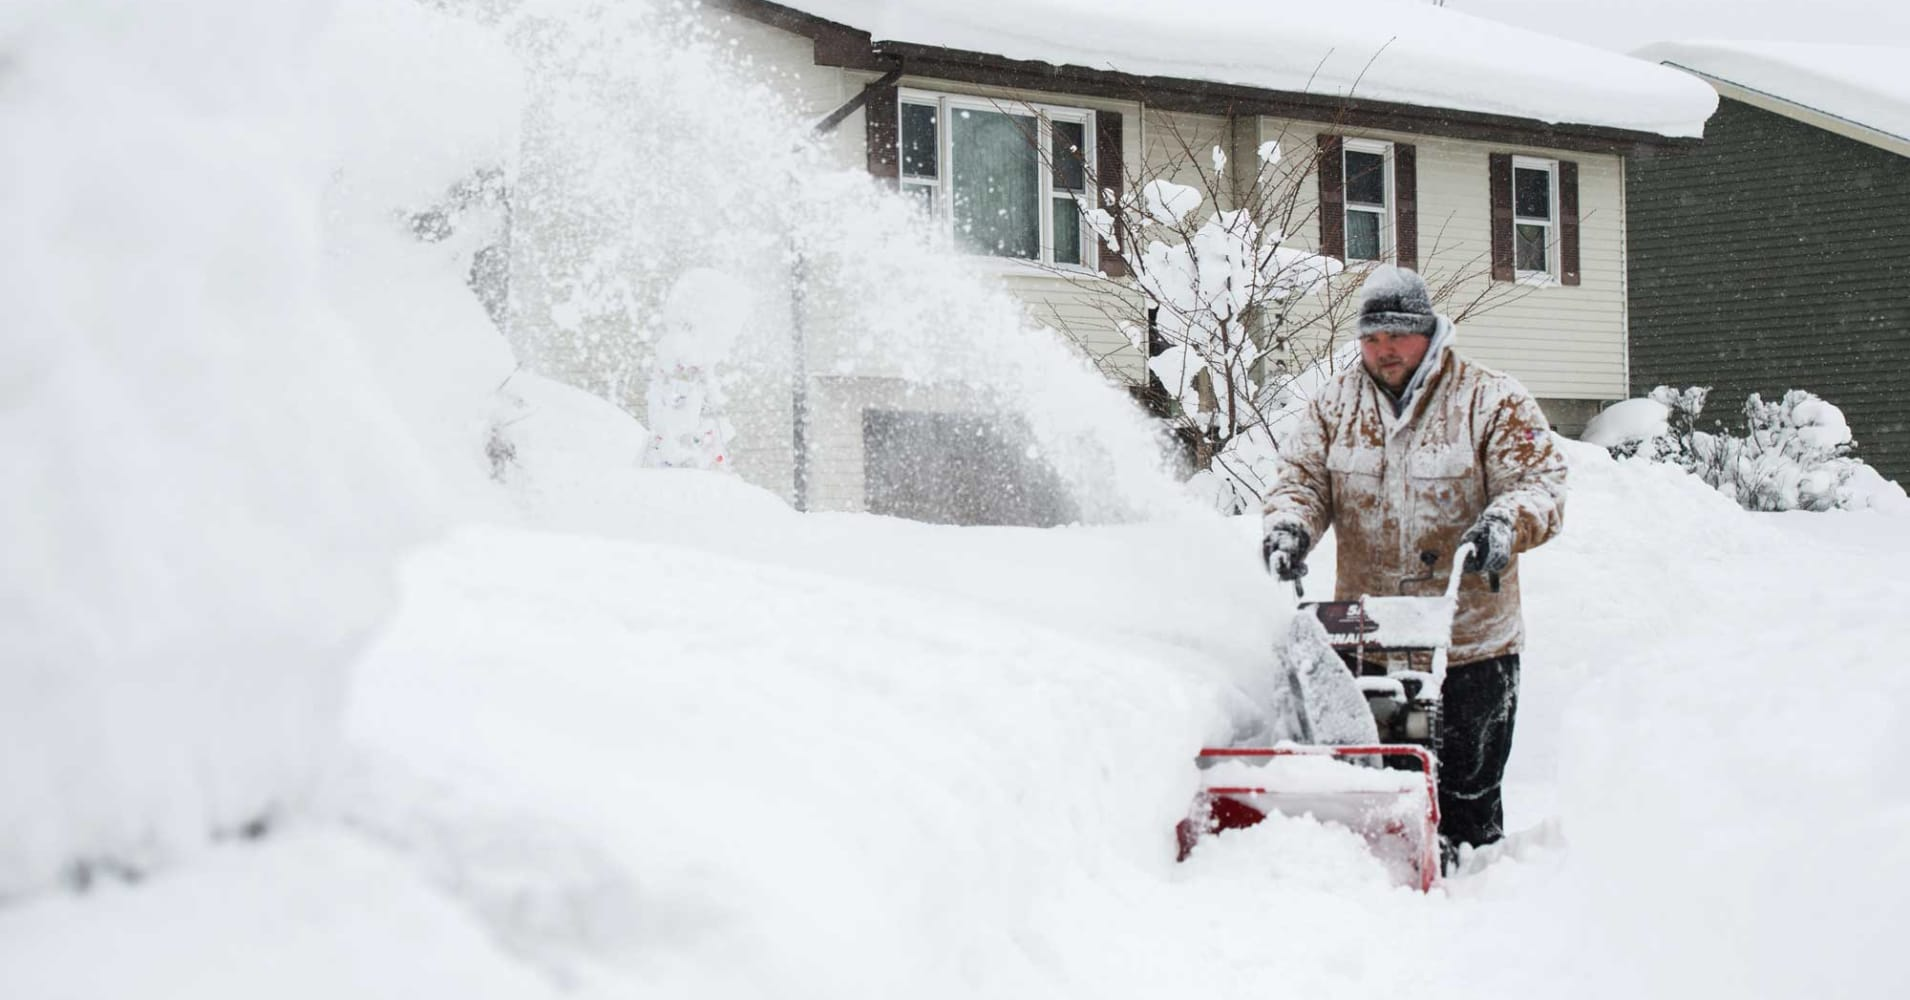 Thomas Berry removes snow from the sidewalk in front of his home after two days of record-breaking snowfall in Erie, Pennsylvania, December 27, 2017.